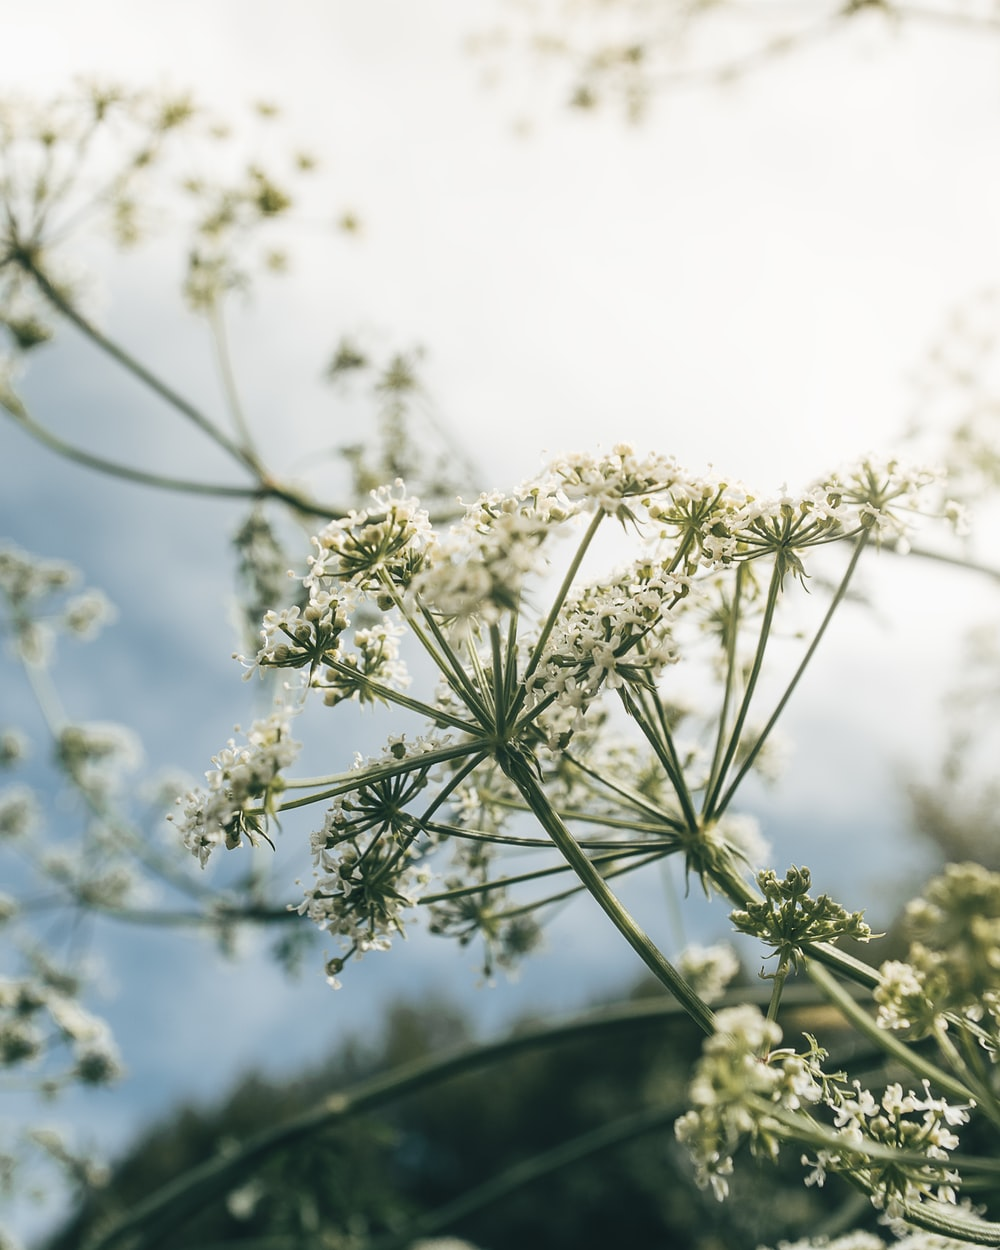 selective focus photo of white-petaled flowers